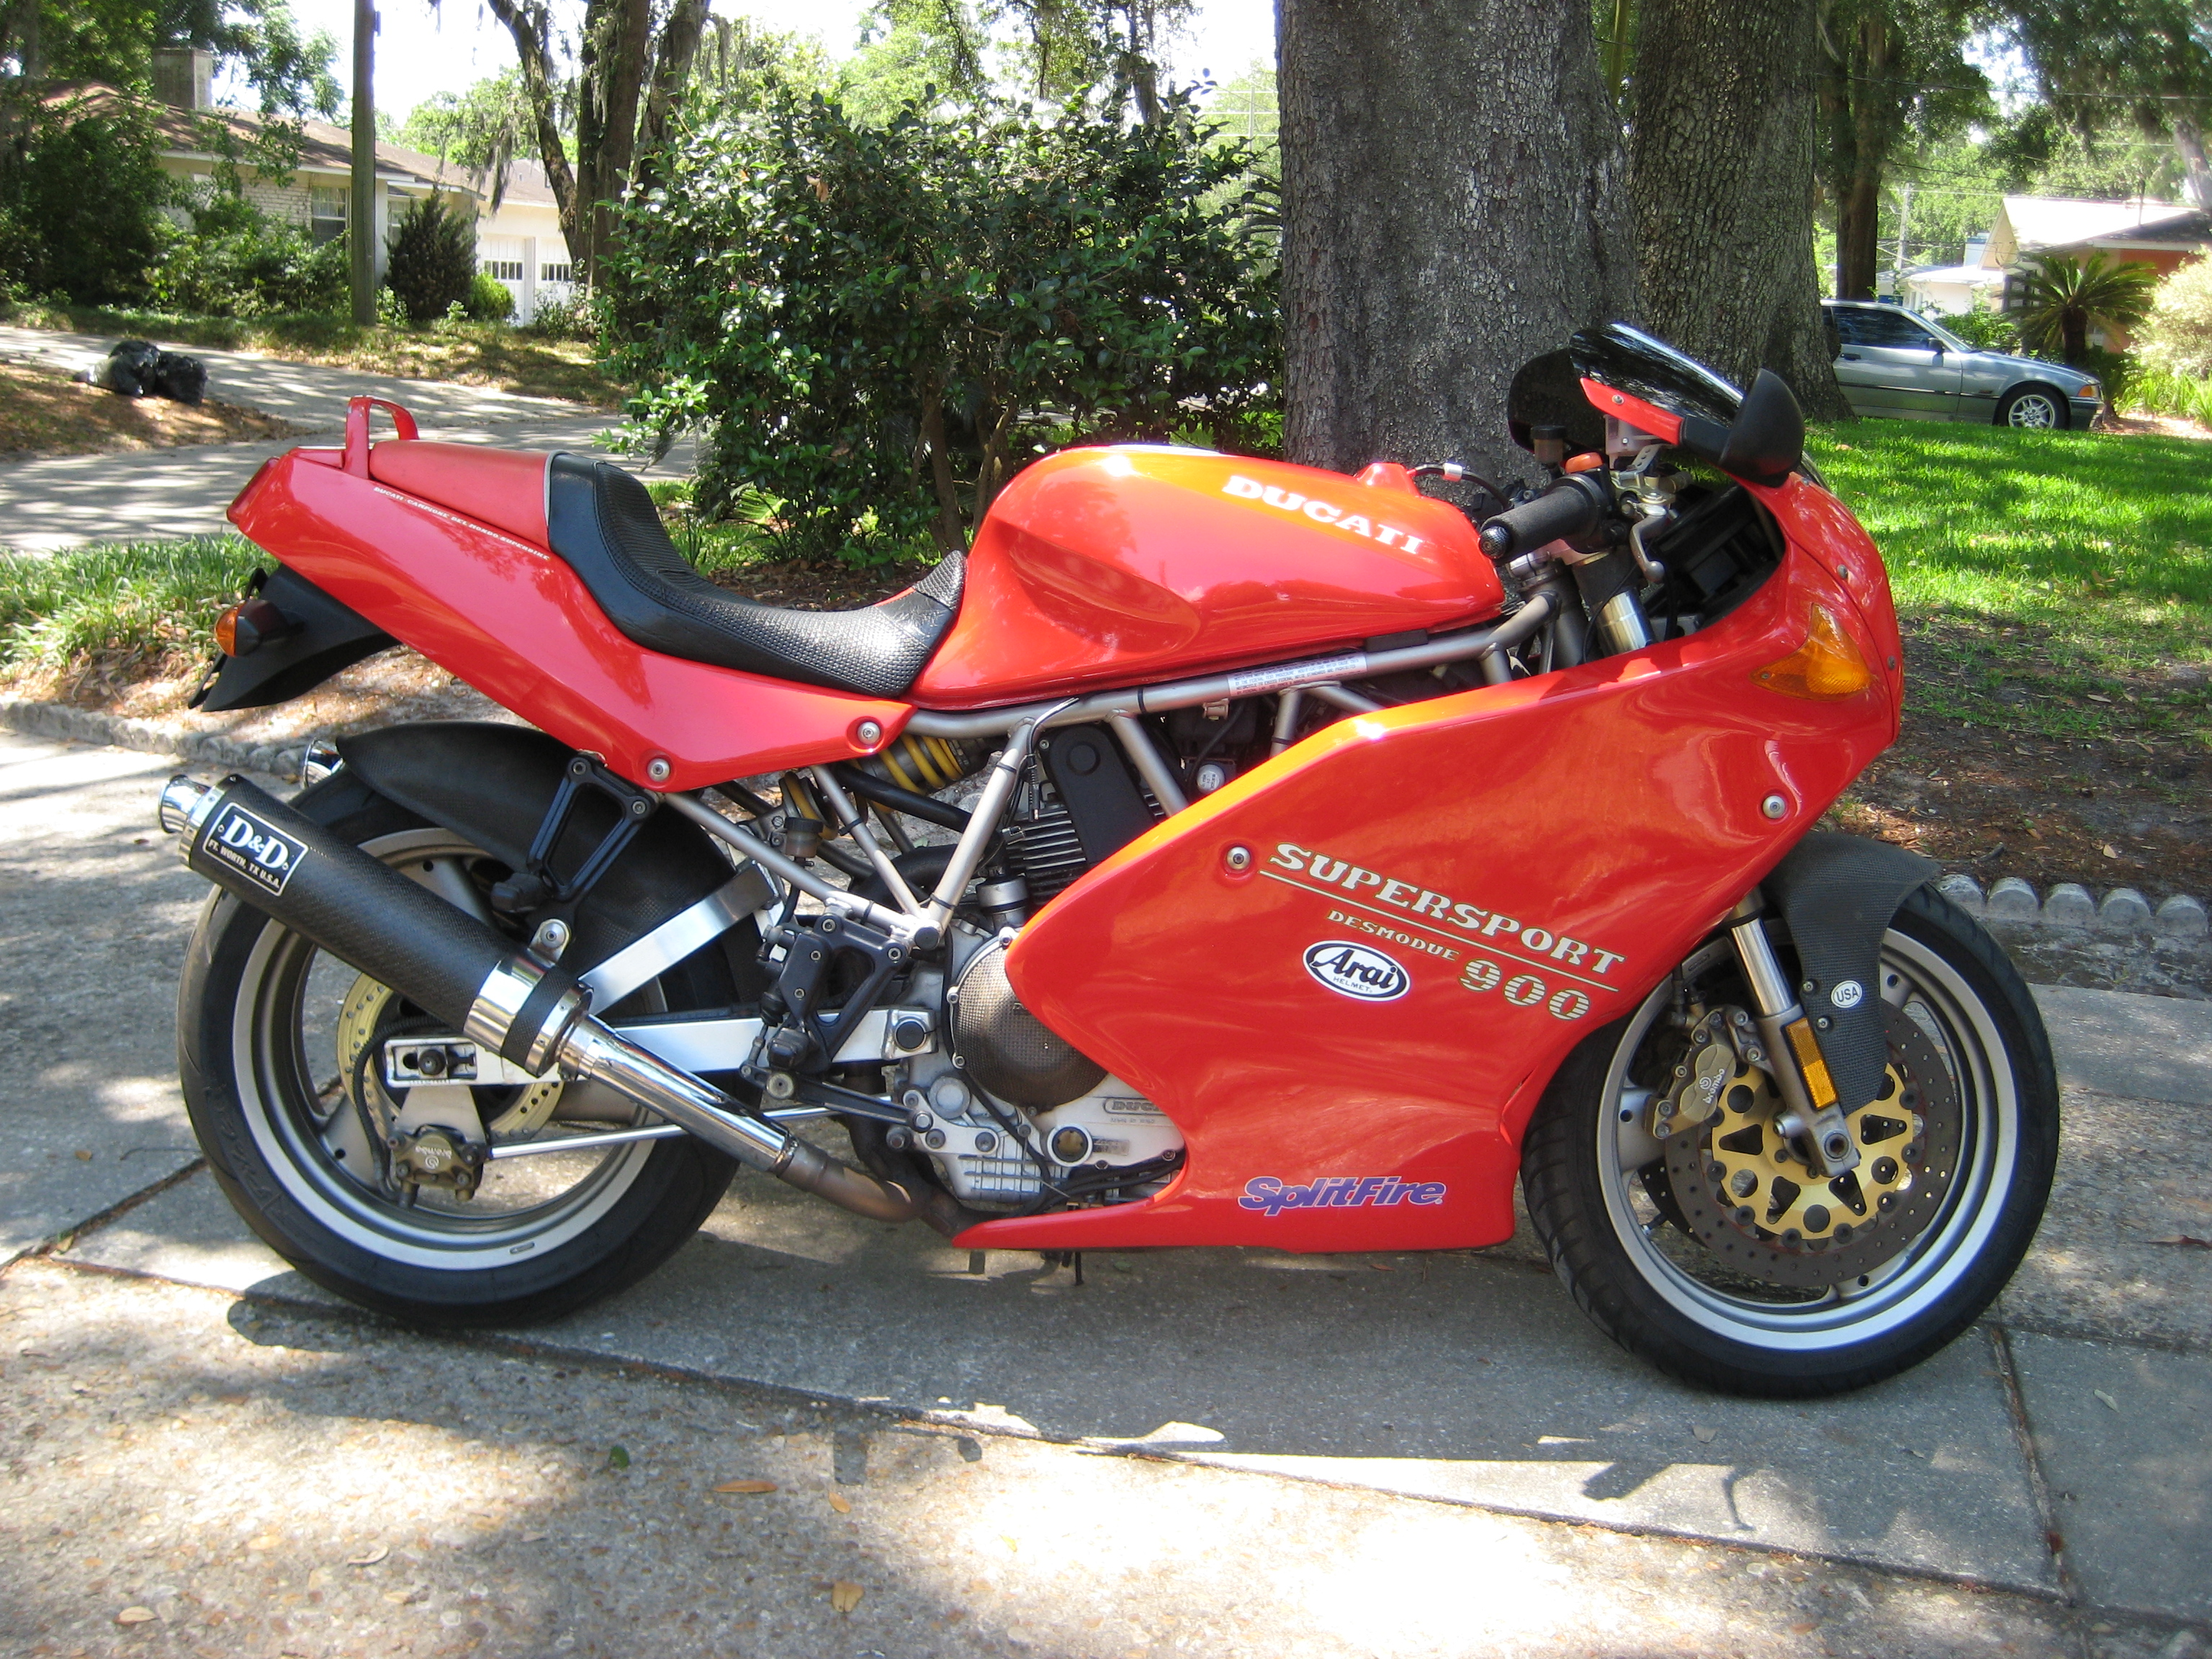 Ducati 900 Superlight images #164888